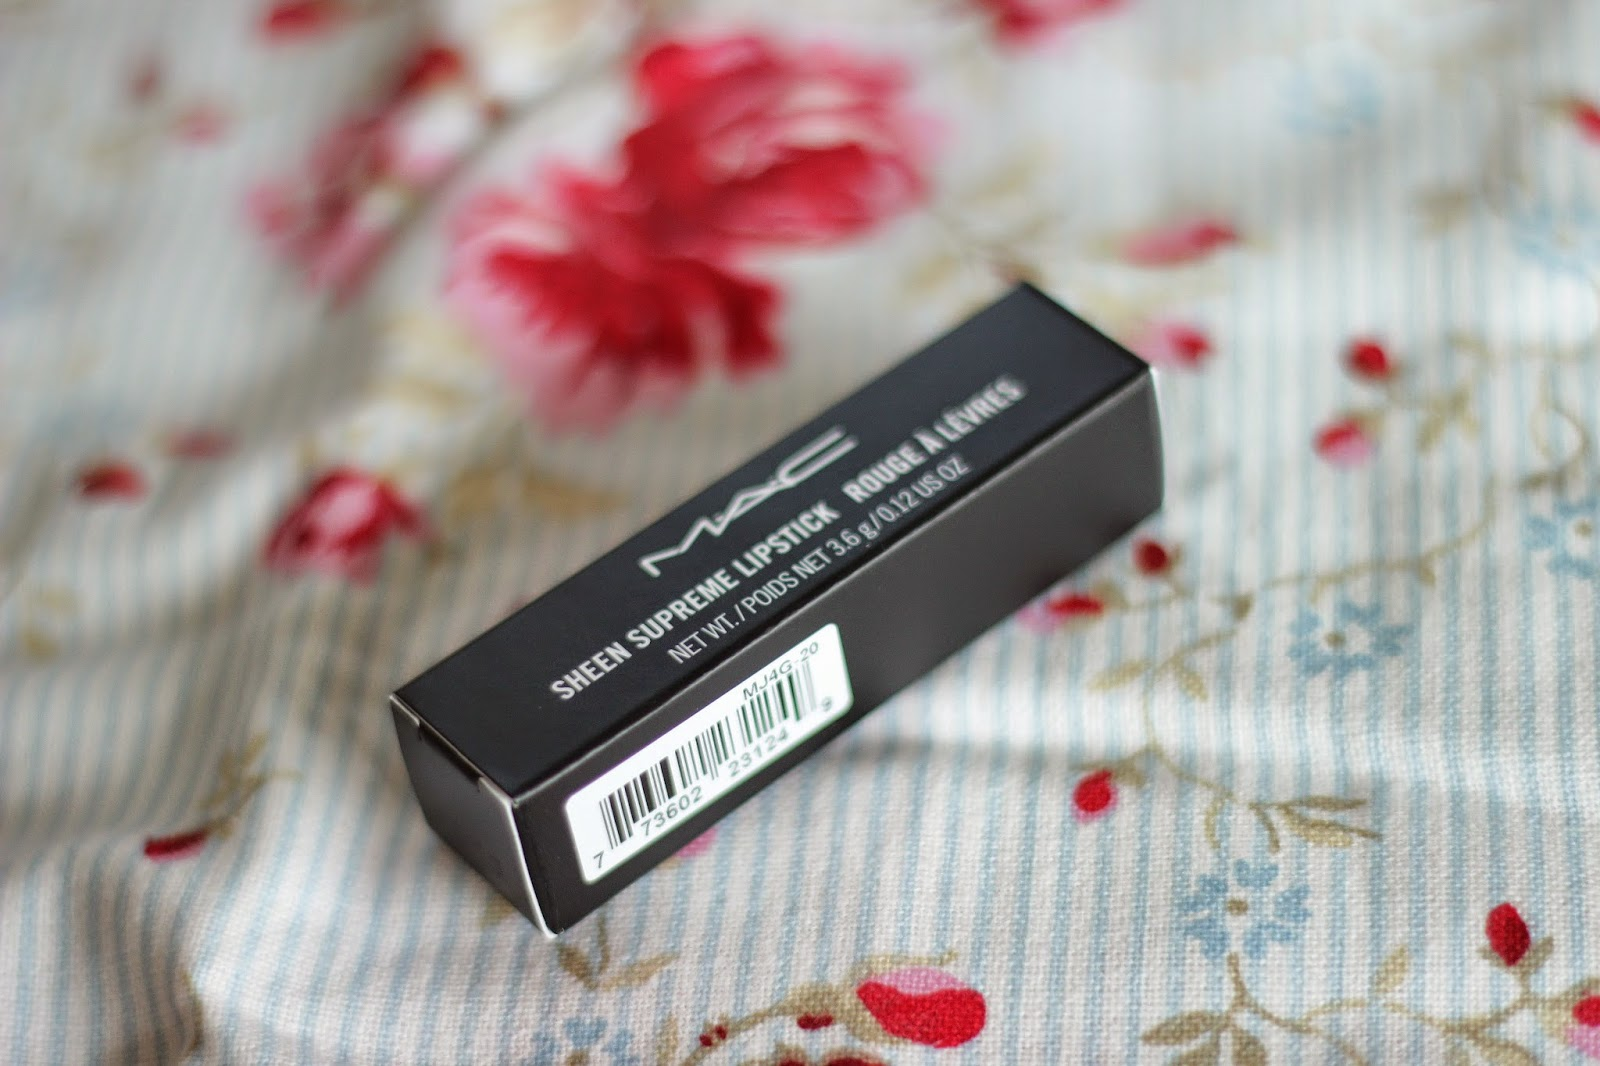 MAC Full Speed Sheen Supreme lipstick